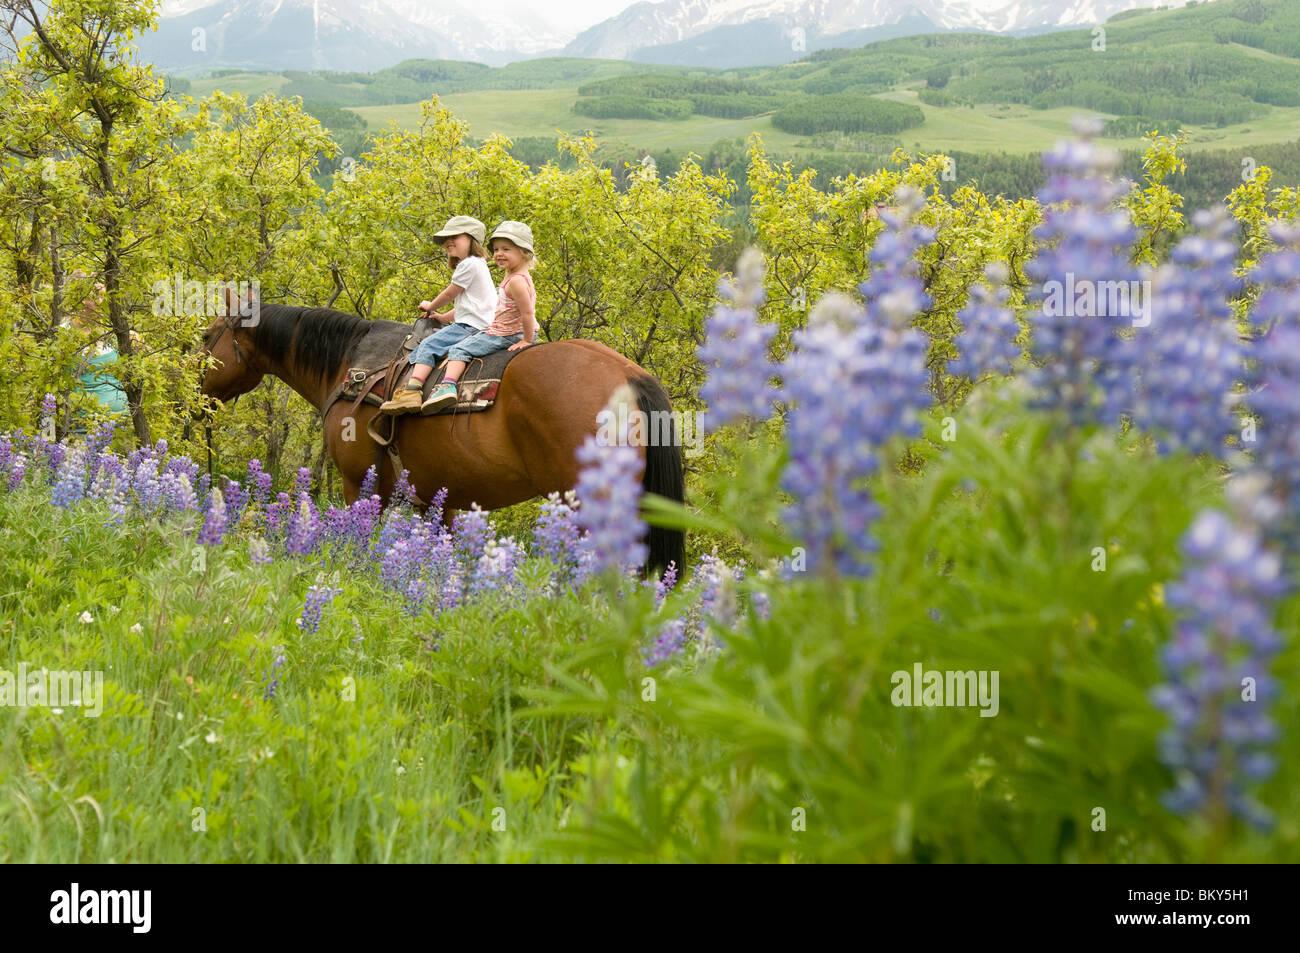 Two young girls horseback riding along trail past lupine flowers near, Telluride, Colorado. - Stock Image